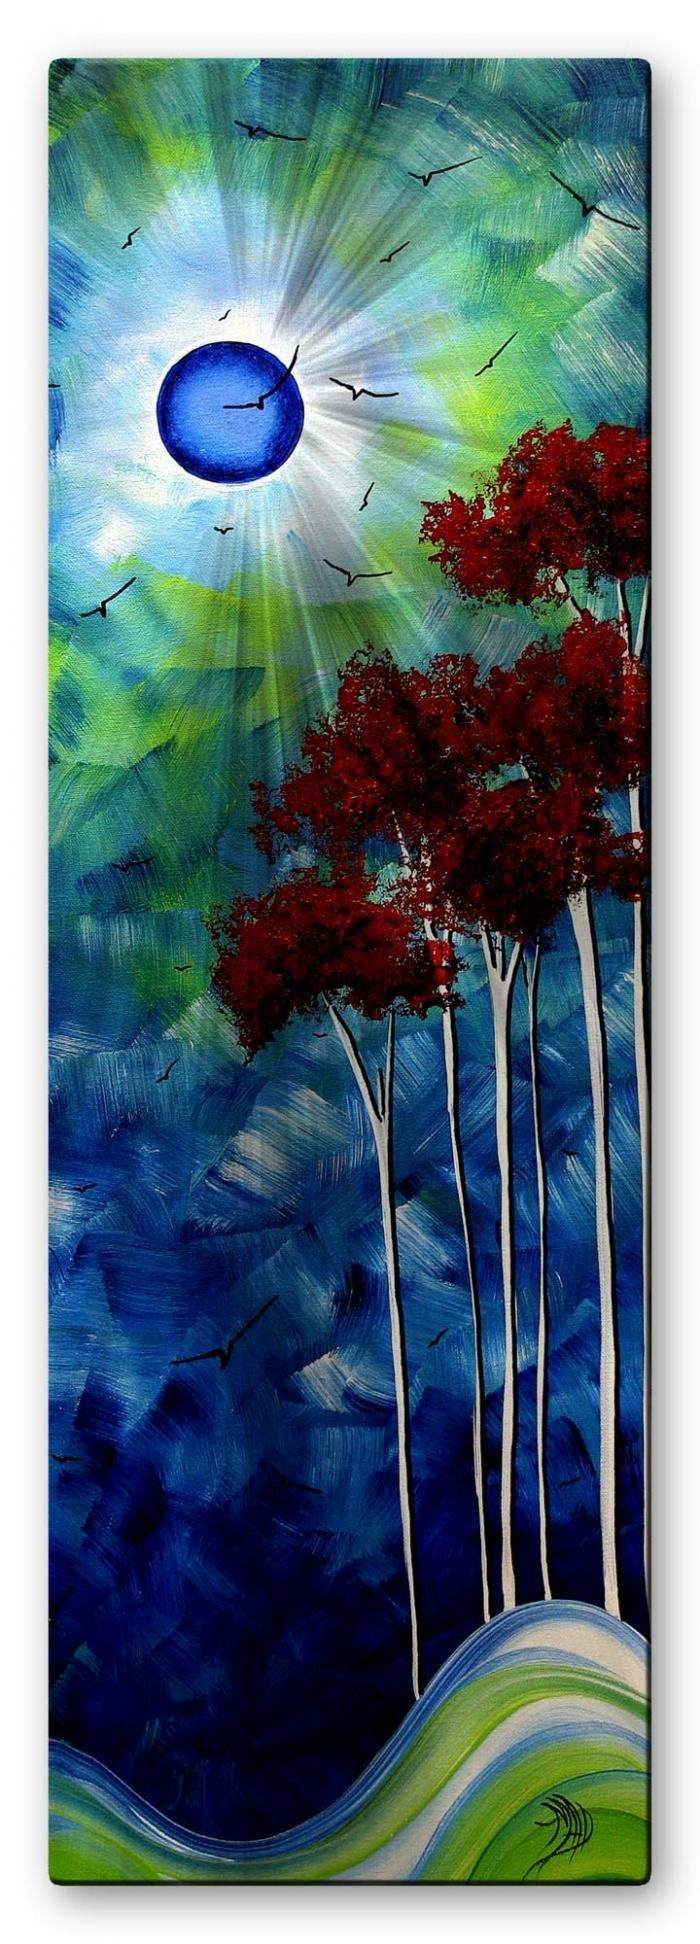 65 Best Artist  Megan Duncanson Images On Pinterest | Abstract Art With Regard To Megan Duncanson Metal Wall Art (Image 2 of 20)